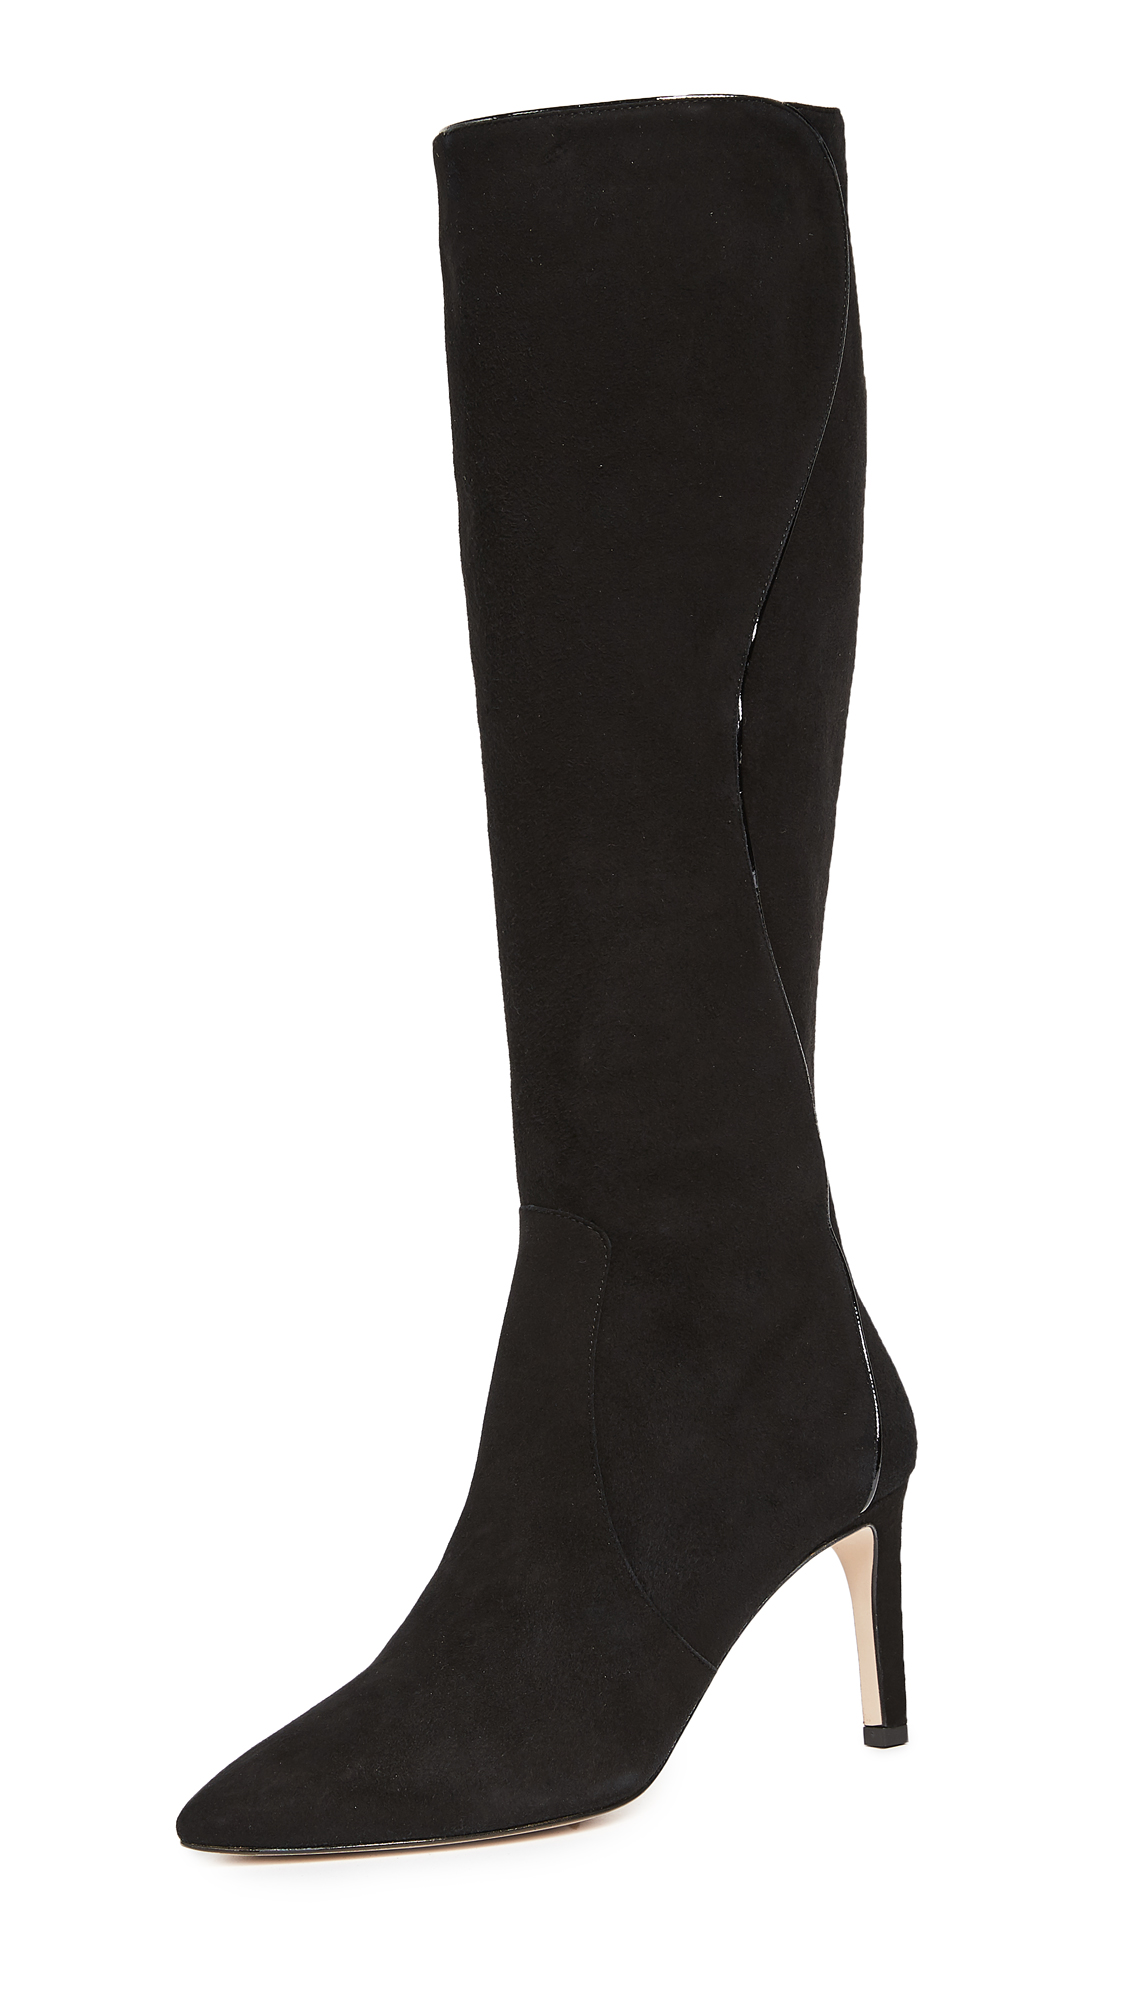 L.K. Bennett Lauren Tall Boots - Black